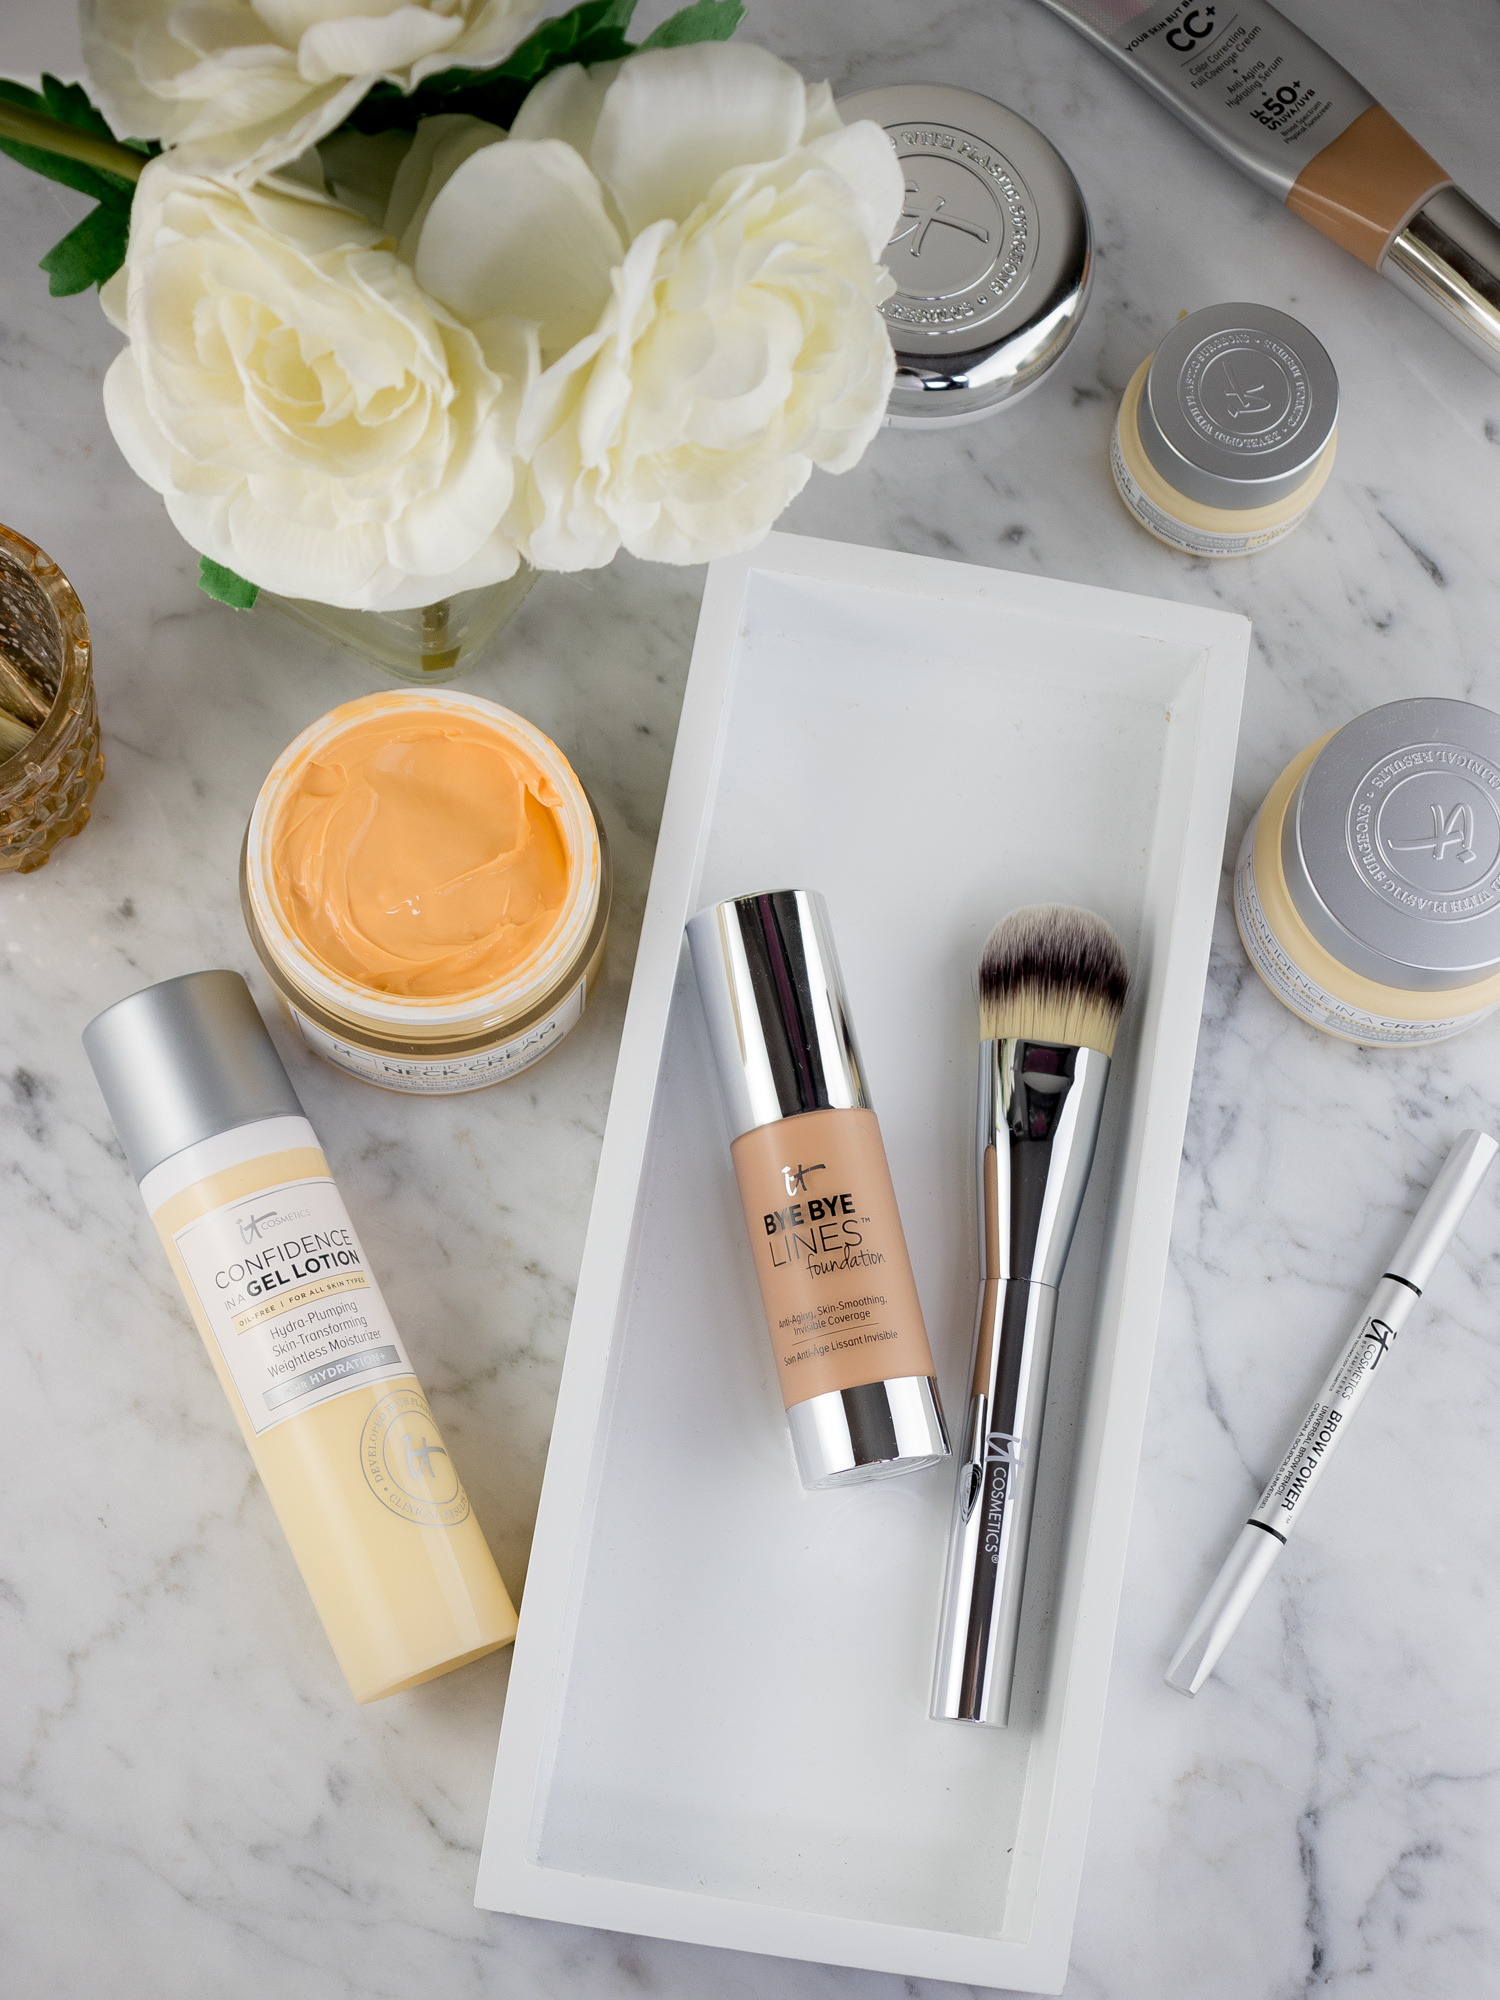 IT Cosmetics January 2019 QVC Today's Special Value